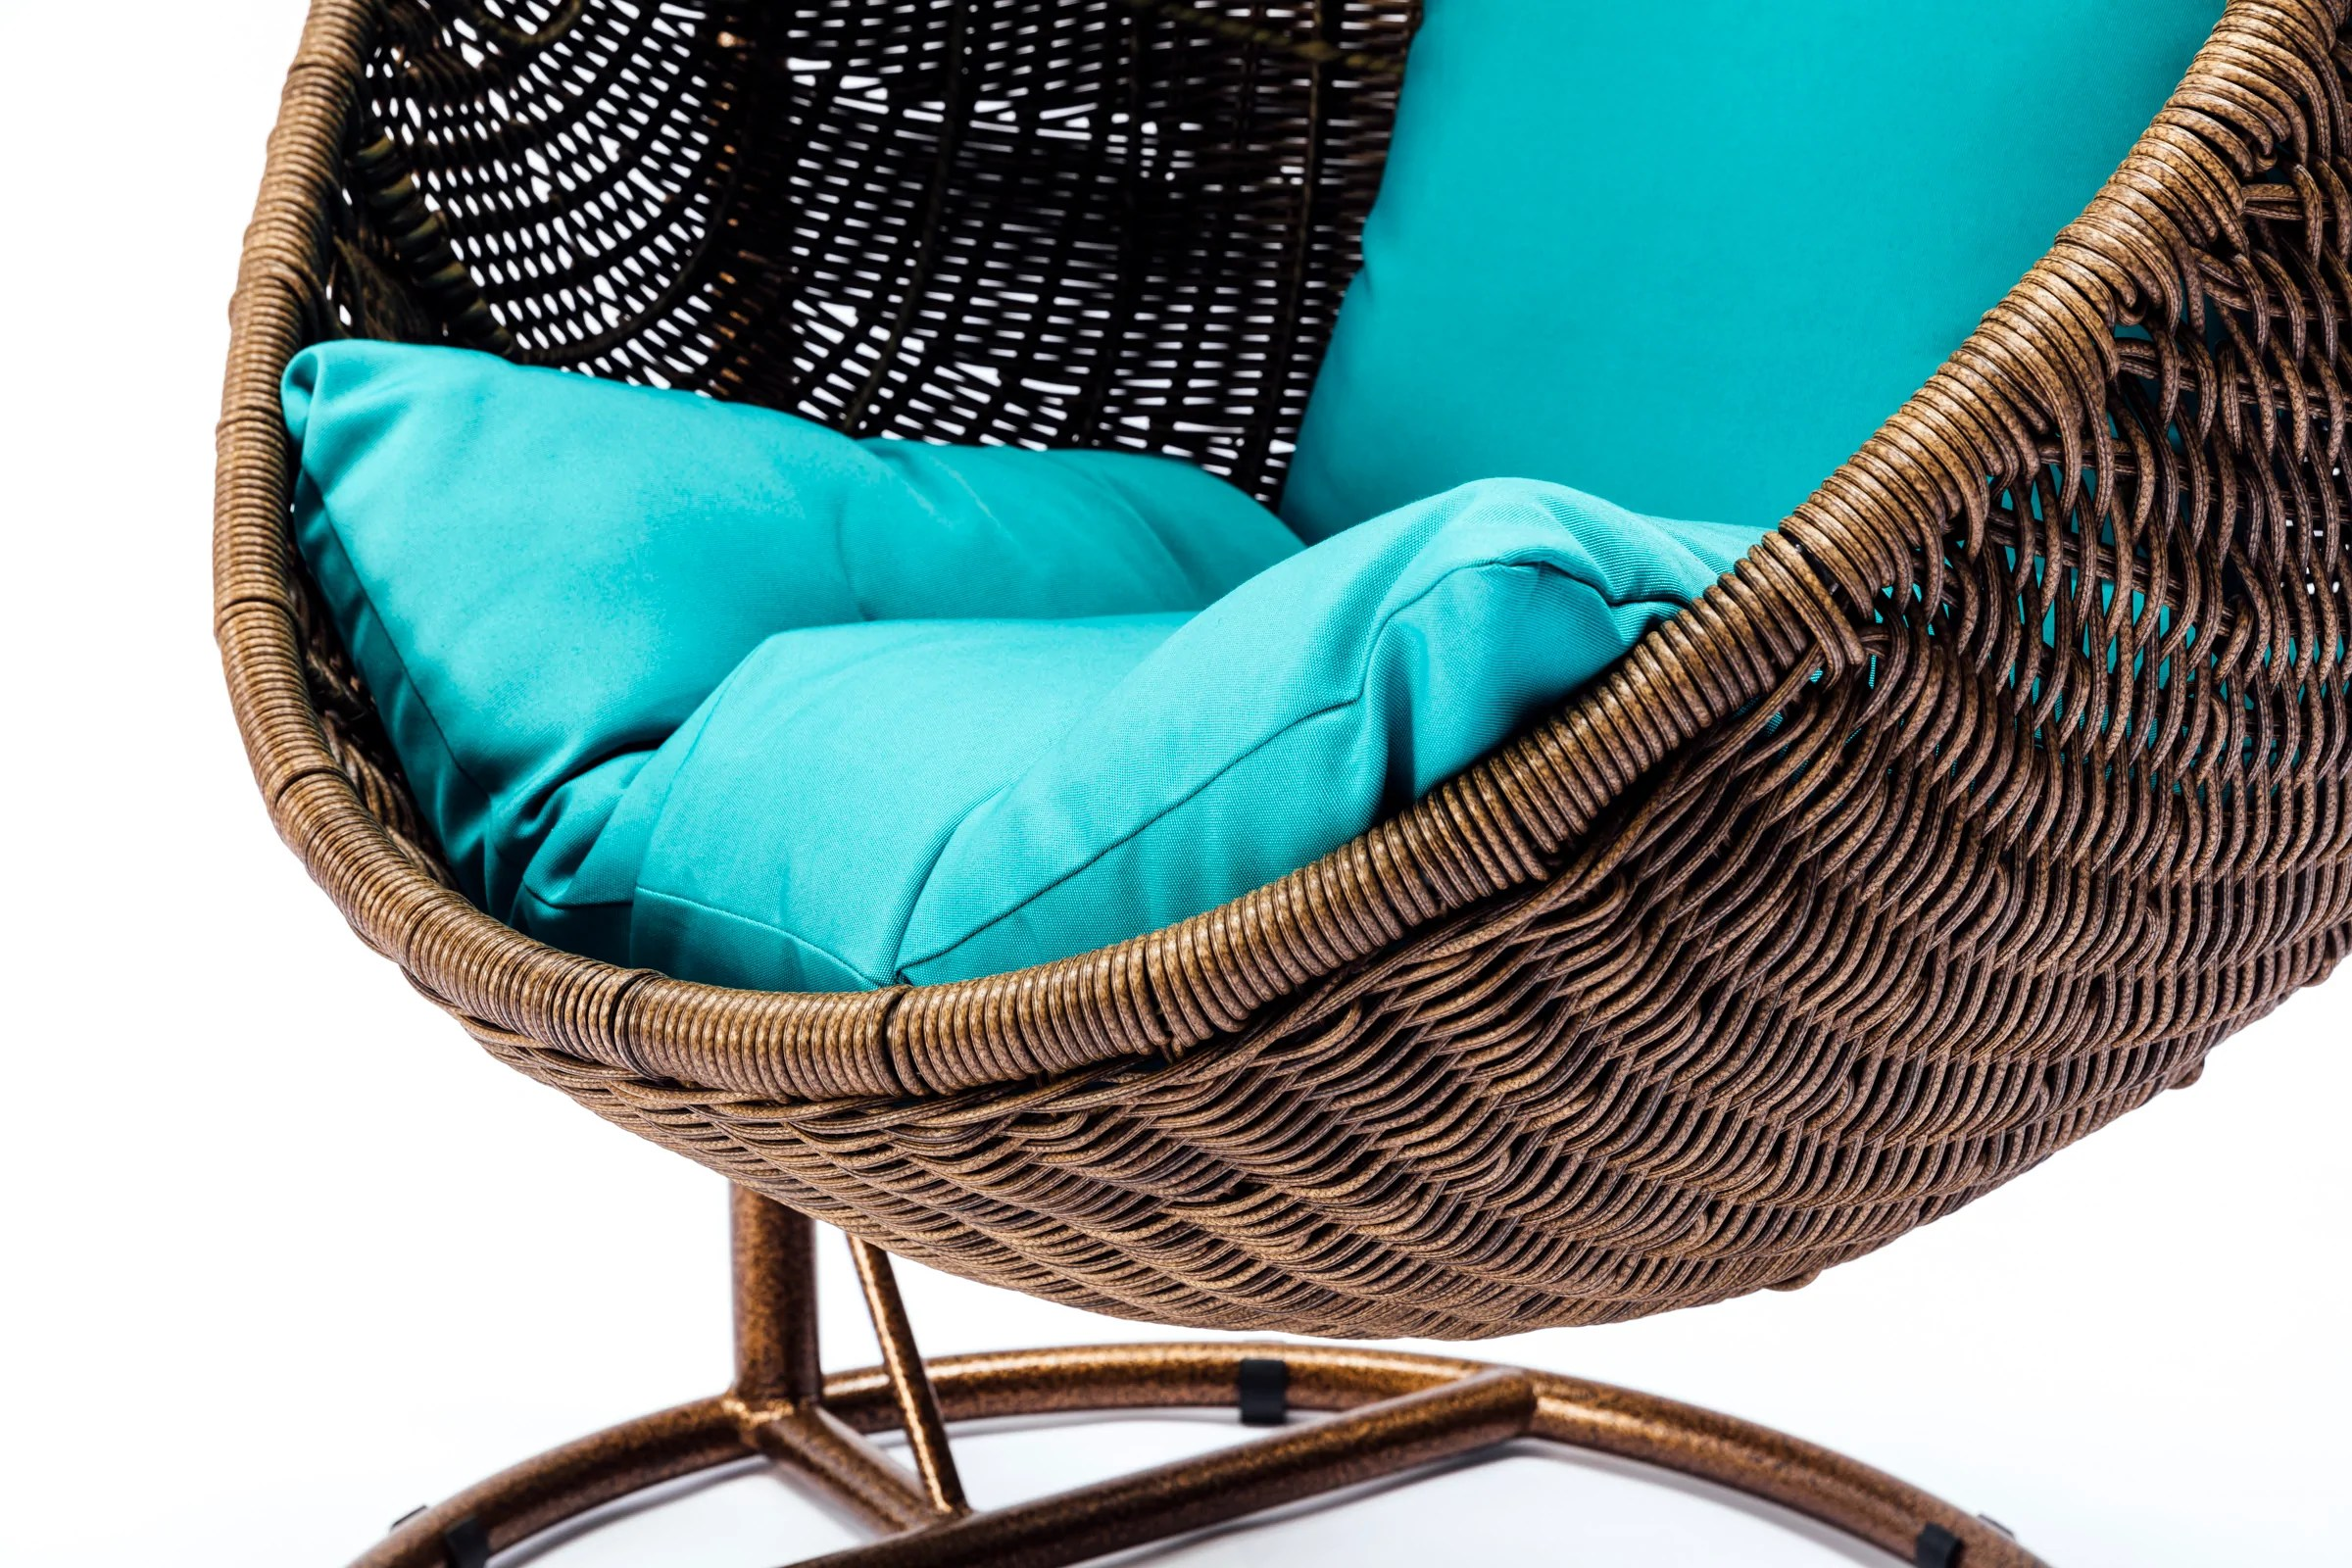 Egg Basket Chair Ansan Outdoor Furniture Wicker Egg Swing Chair